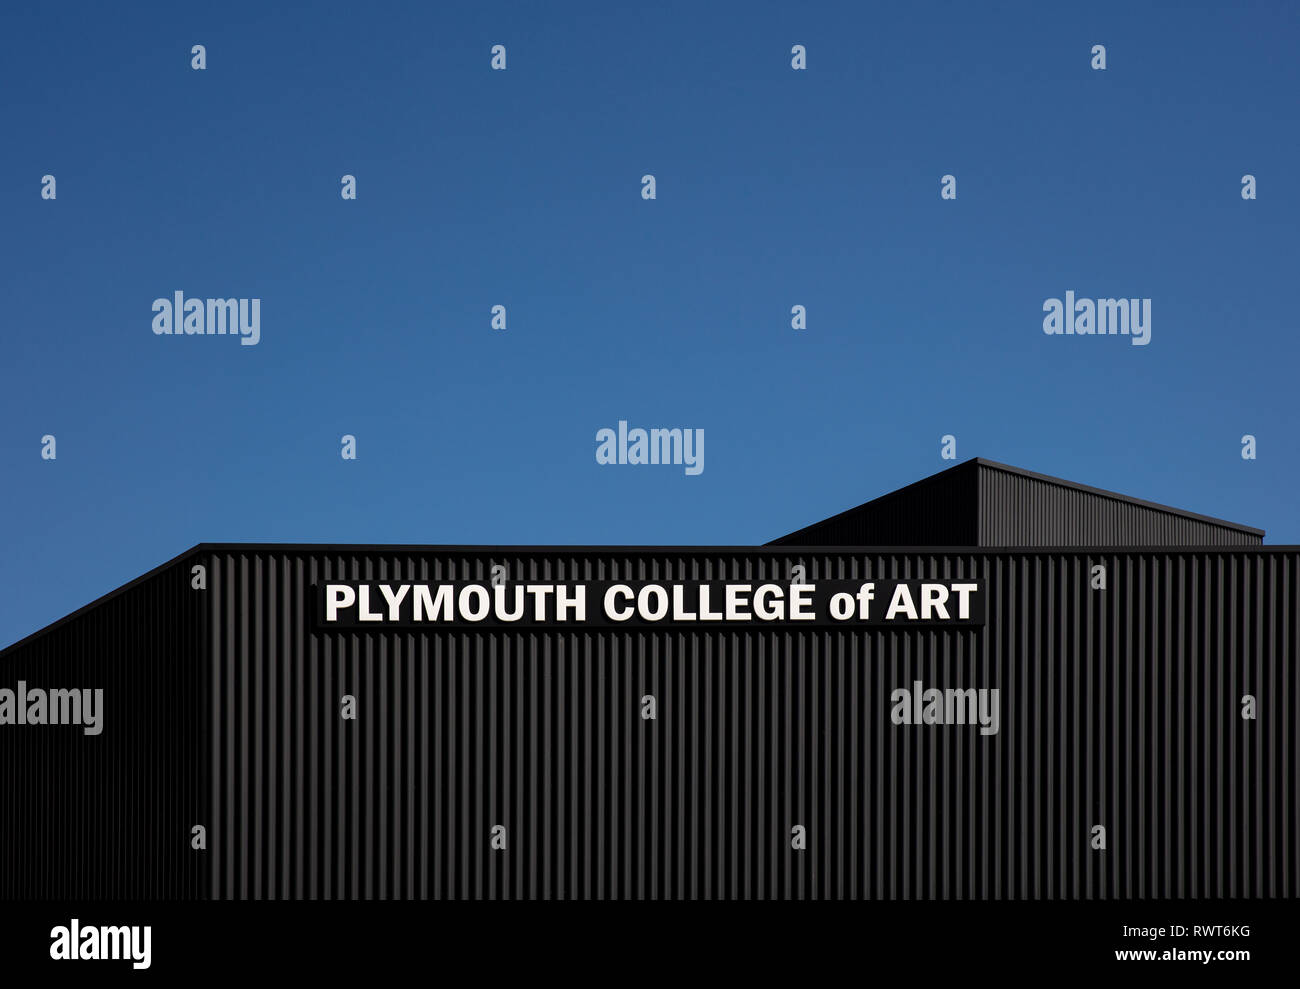 Plymouth College of Art - formerly called Plymouth College of Art and Design - is a specialist arts college located in Plymouth, Devon - Stock Image